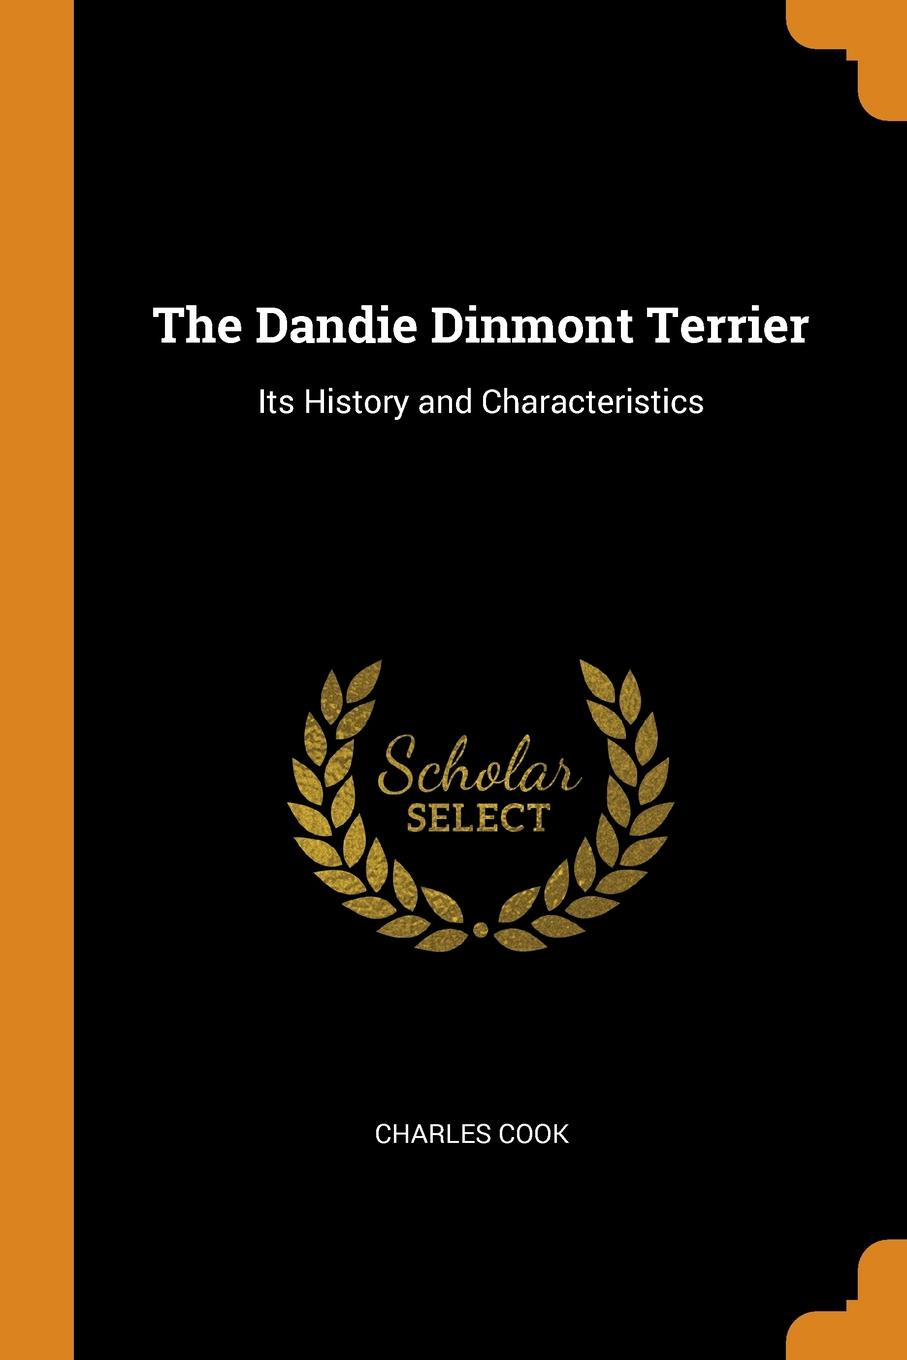 Charles Cook The Dandie Dinmont Terrier. Its History and Characteristics charles richard tuttle the centennial northwest an illustrated history of the northwest being a full and complete civil political and military history of this great section of the united states from its earliest settlement to the present time